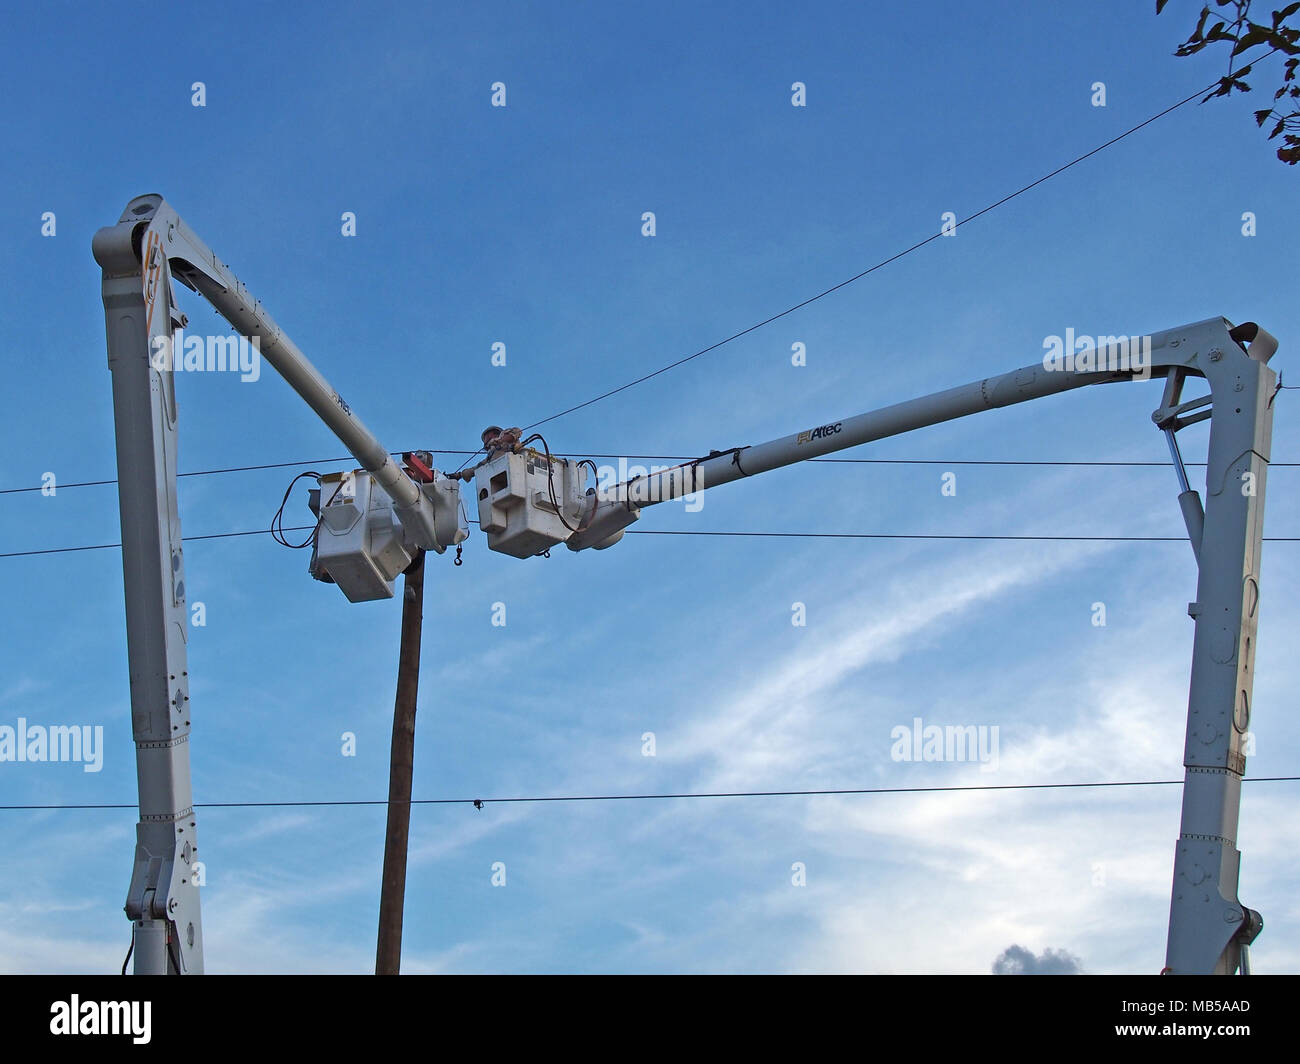 Emergency workers repairing damaged electrical wire which caused a power outtage, Orlando, Florida © Katharine Andriotis Stock Photo